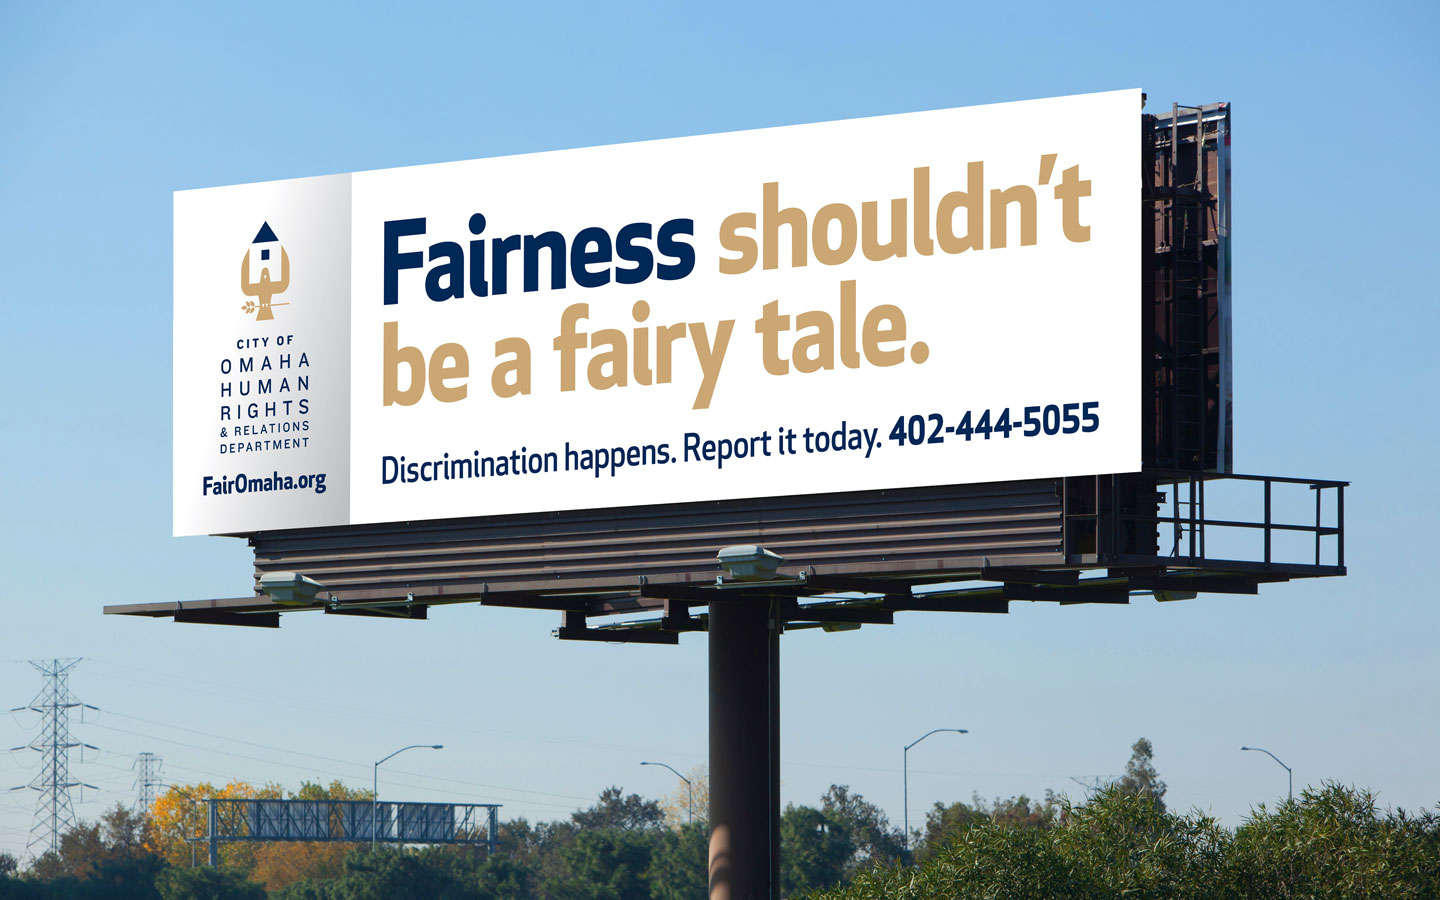 City of Omaha Human Rights and Relations Dept. Billboard